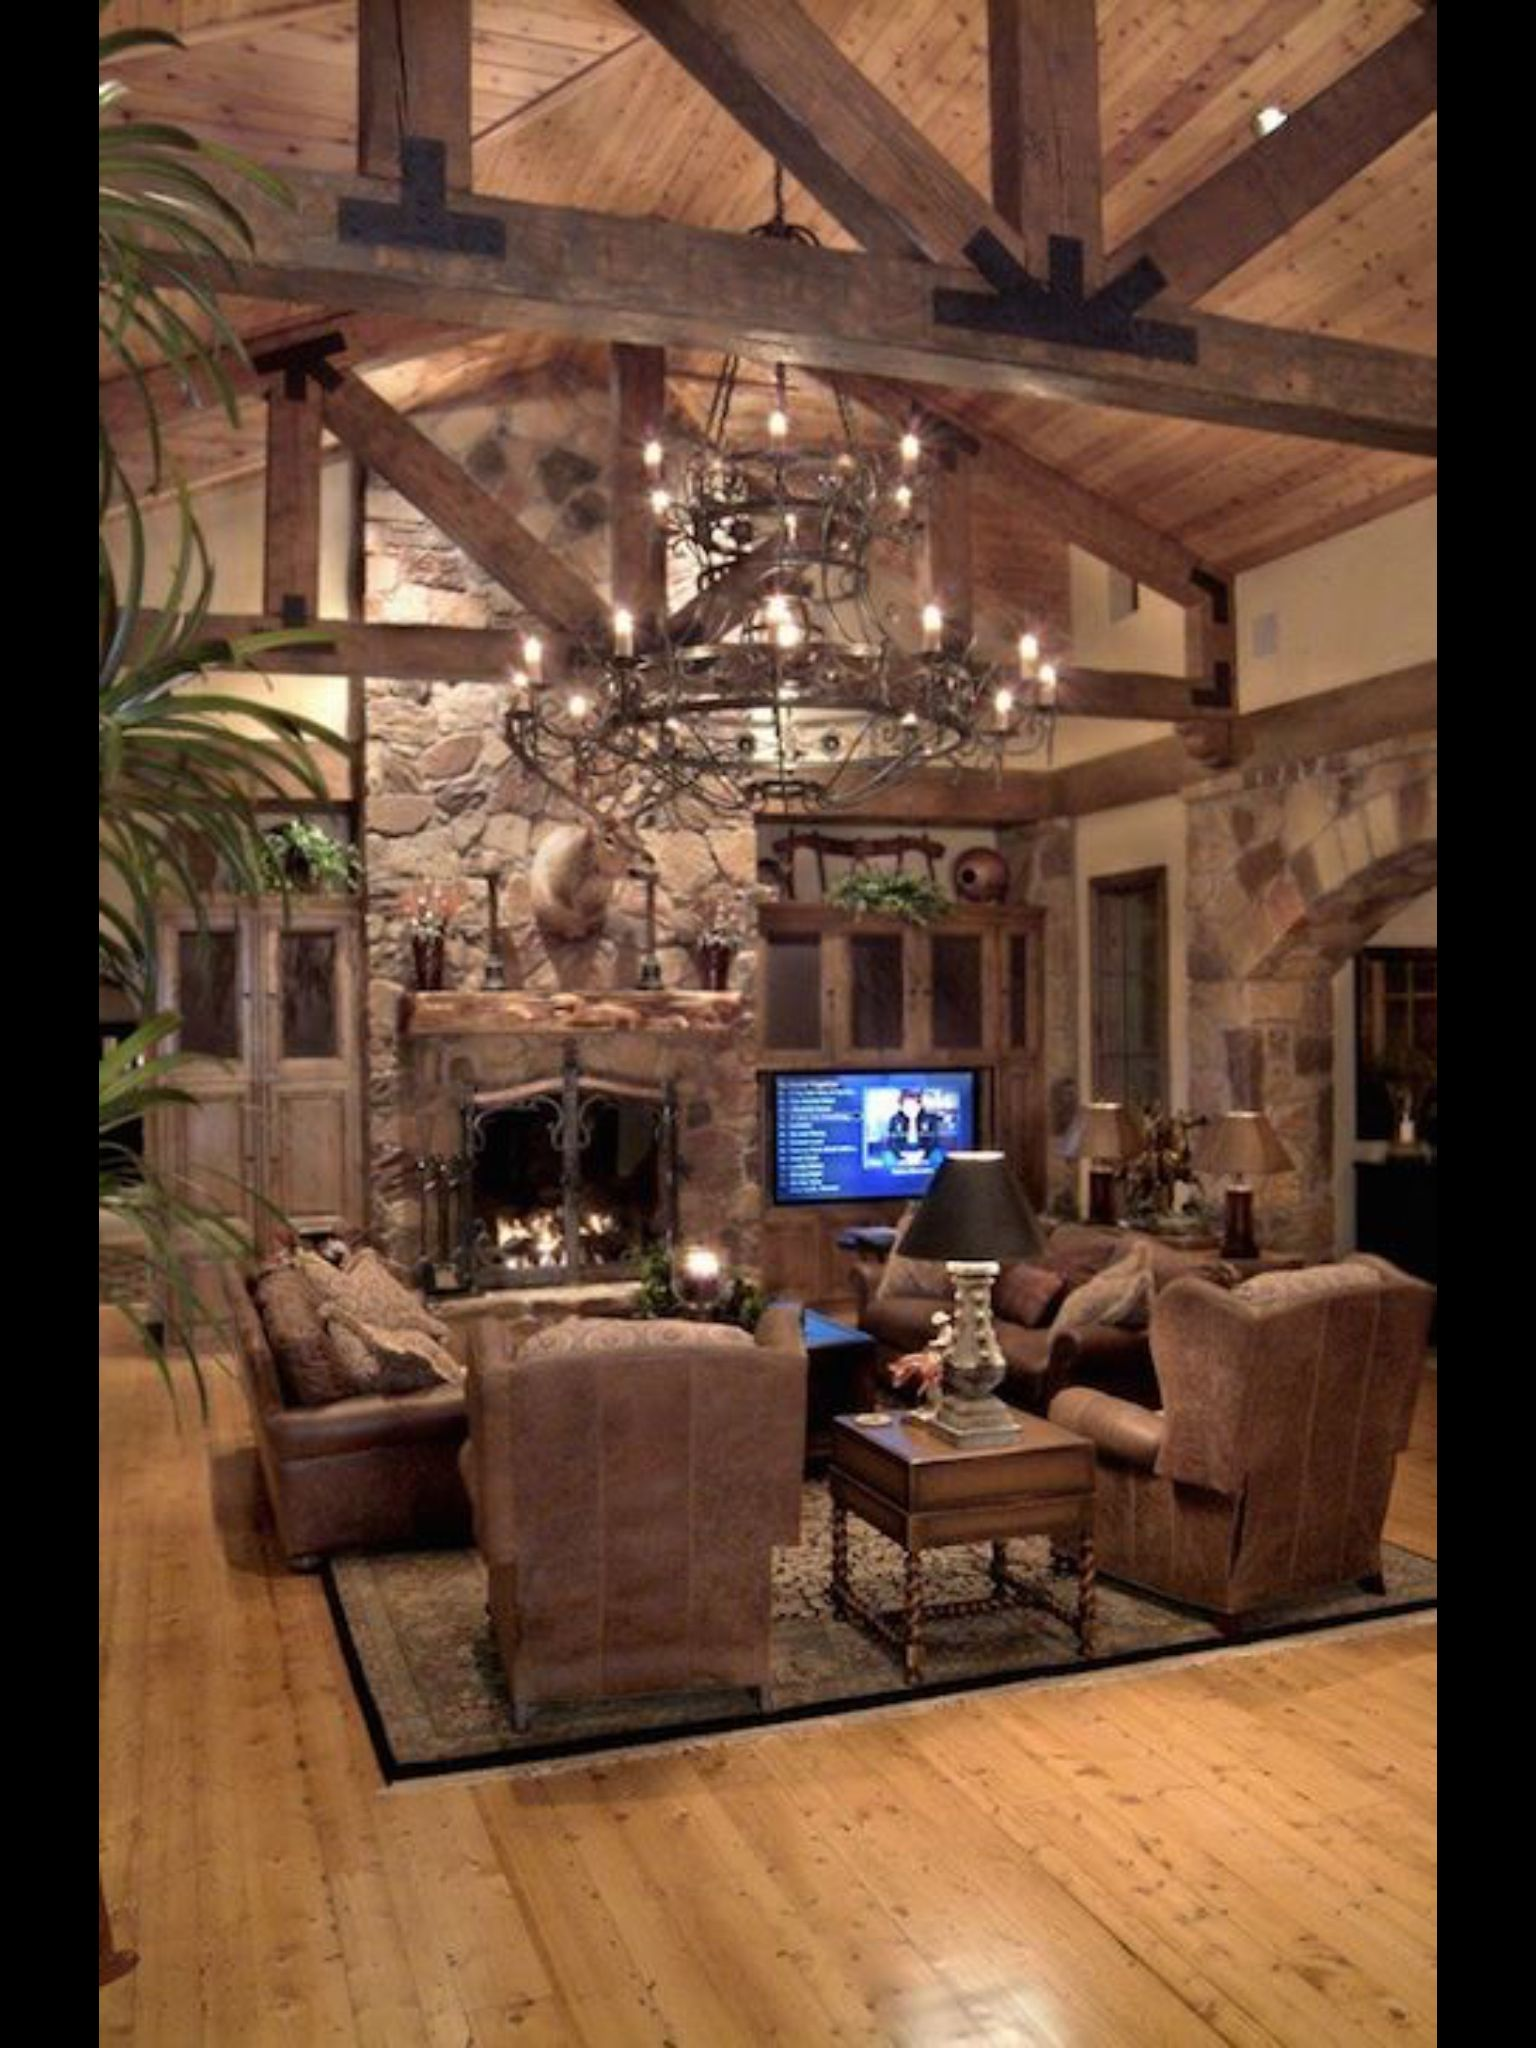 Lighting For Living Room Vaulted Ceilings Living Room Vaulted Ceiling Beams Lighting Home Decor